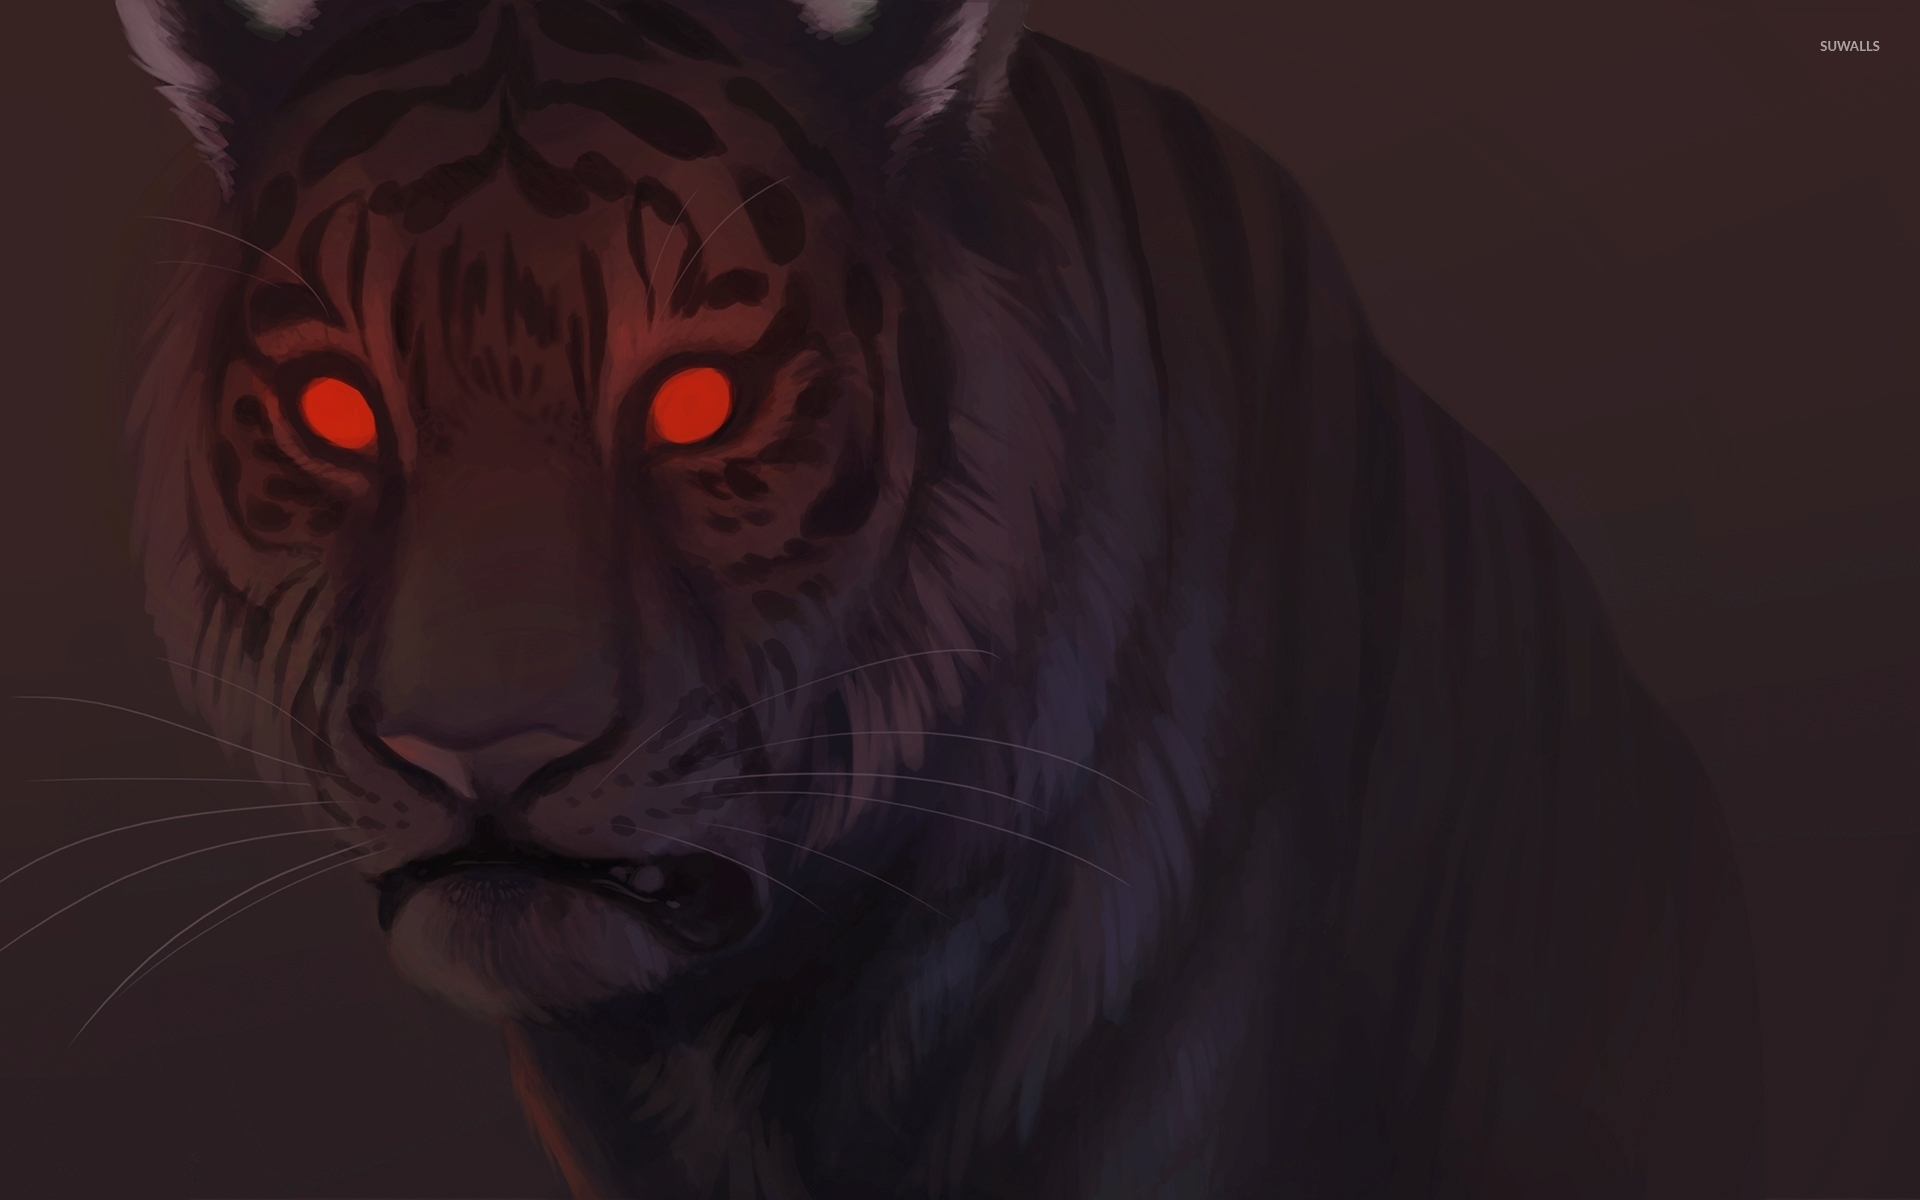 Tiger with red eyes wallpaper digital art wallpapers 41766 tiger with red eyes wallpaper digital art altavistaventures